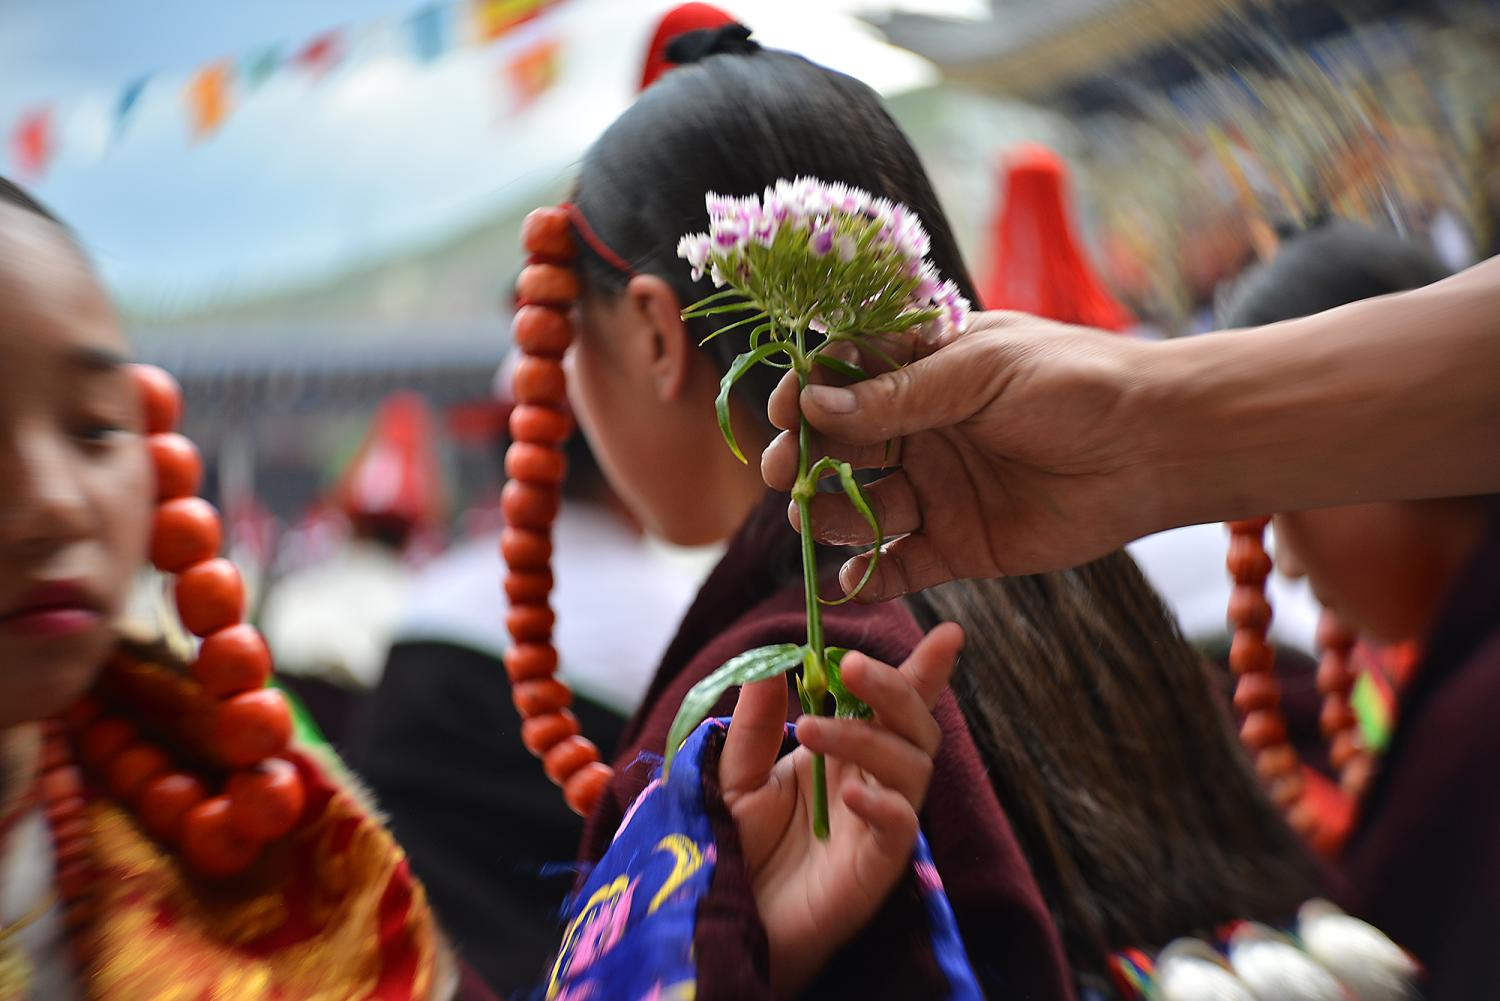 Only unmarried women dance during the festival. Because of this, there is a much wider age range among participating men than women. Men can be up to 45 years old.